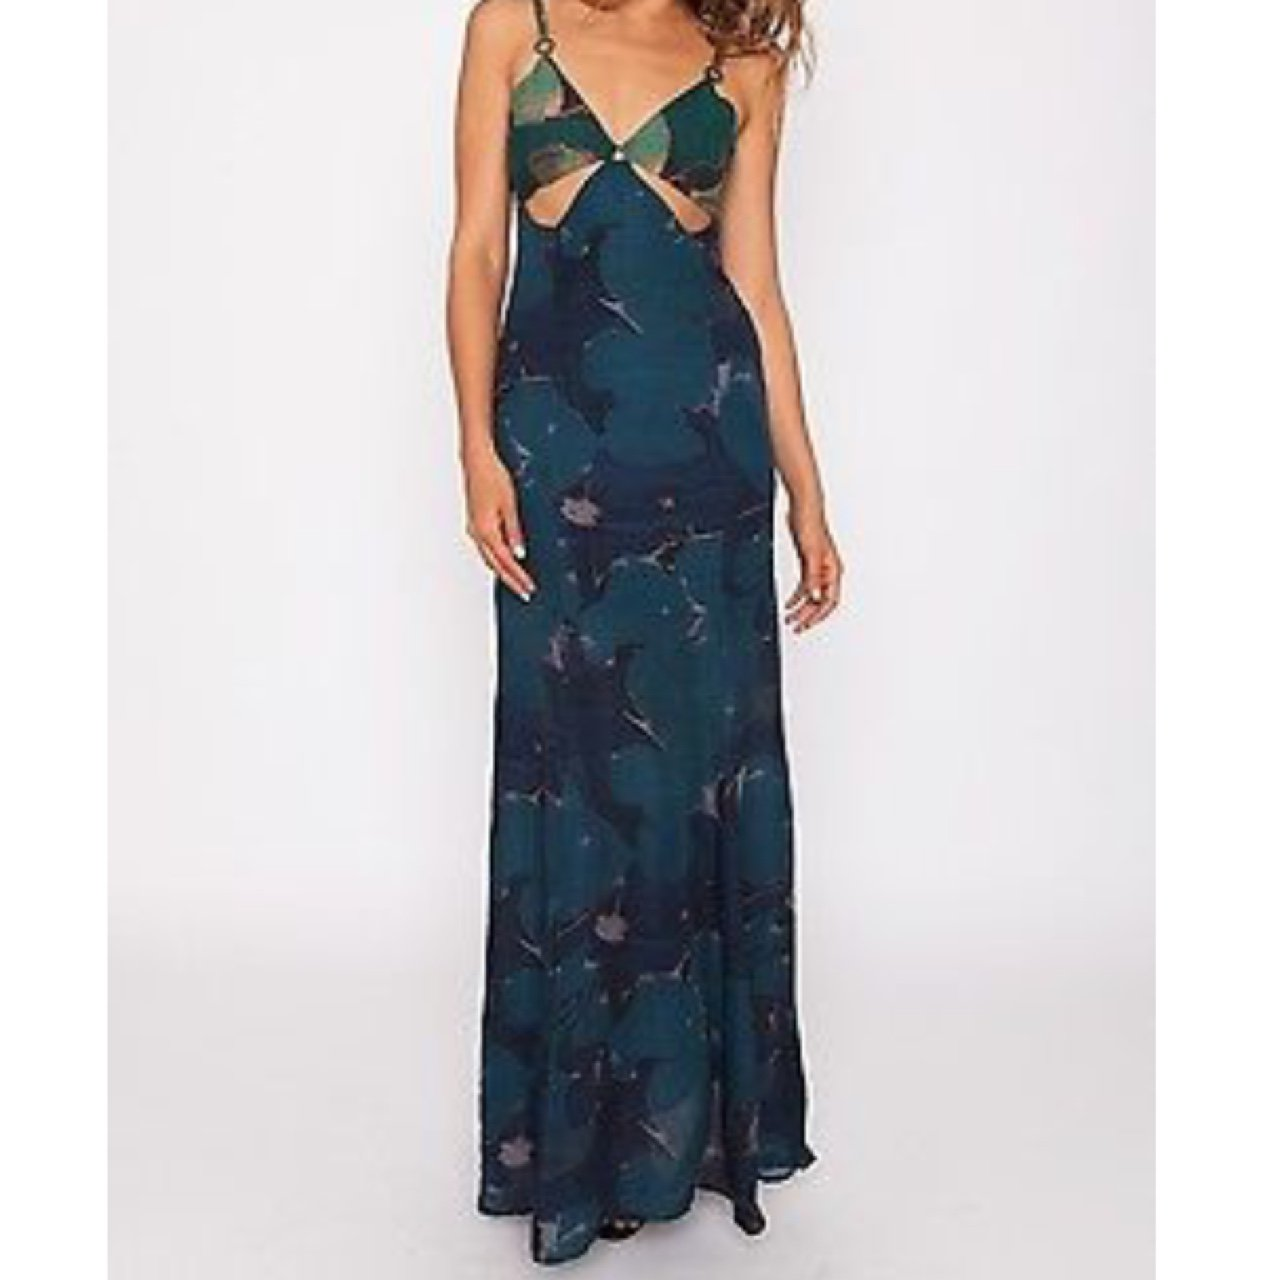 48c256126a0 Beautiful stone cold fox maxi - brand new with tags. Never a - Depop